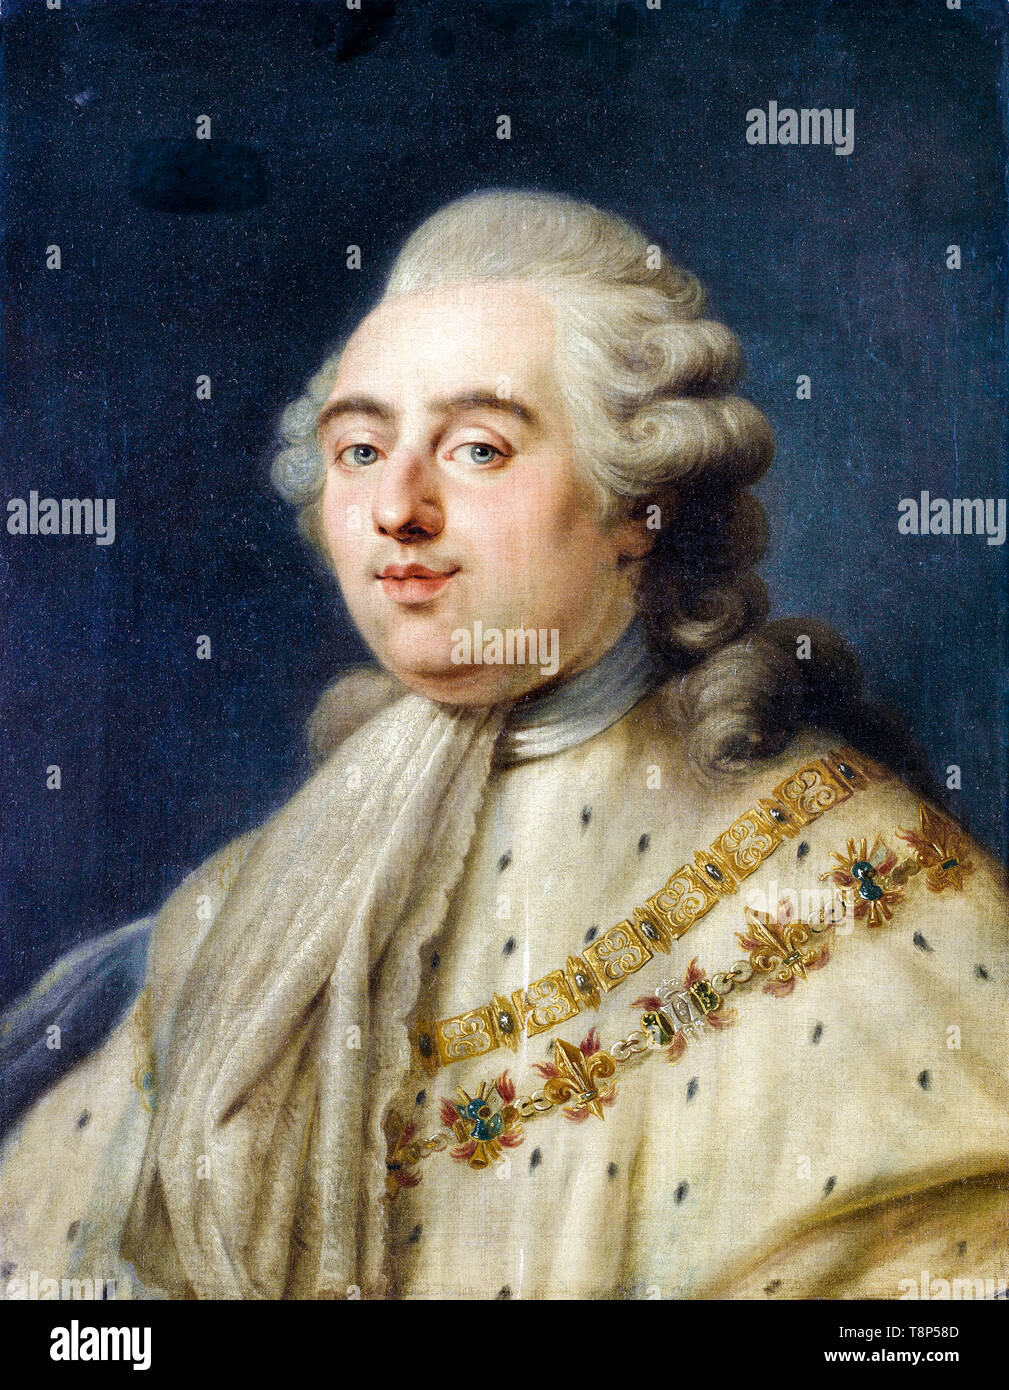 Portrait of King Louis XVI King of France, painting by the circle of Antoine-François Callet, 18th Century Stock Photo